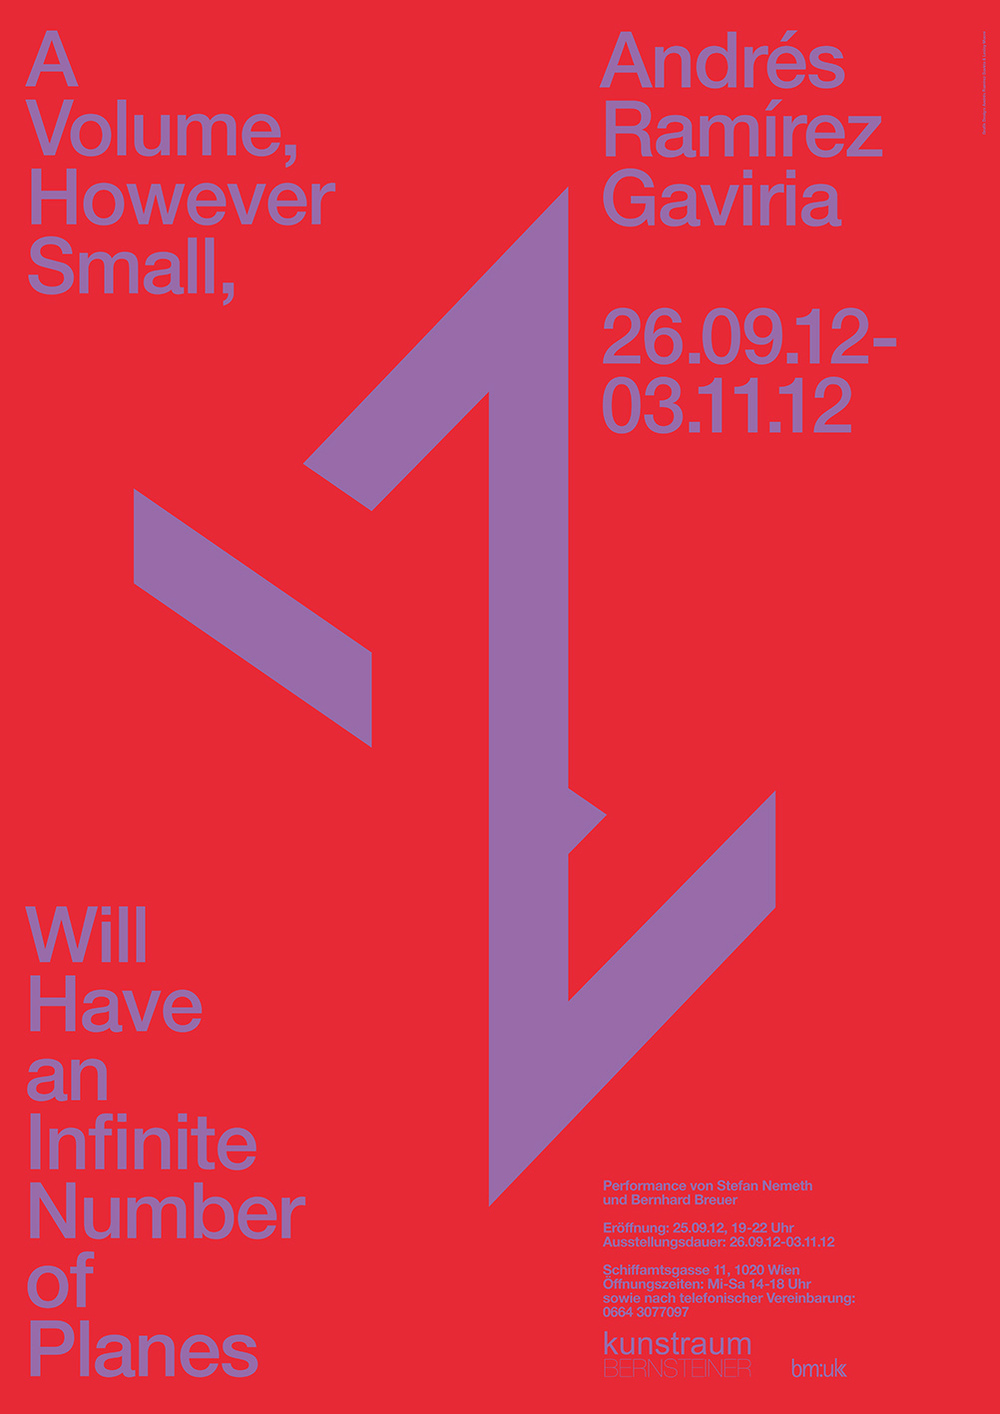 Exhibition poster, A Volume, However Small, Will Have an Infinite Number of Planes, Design with Lesley Moore